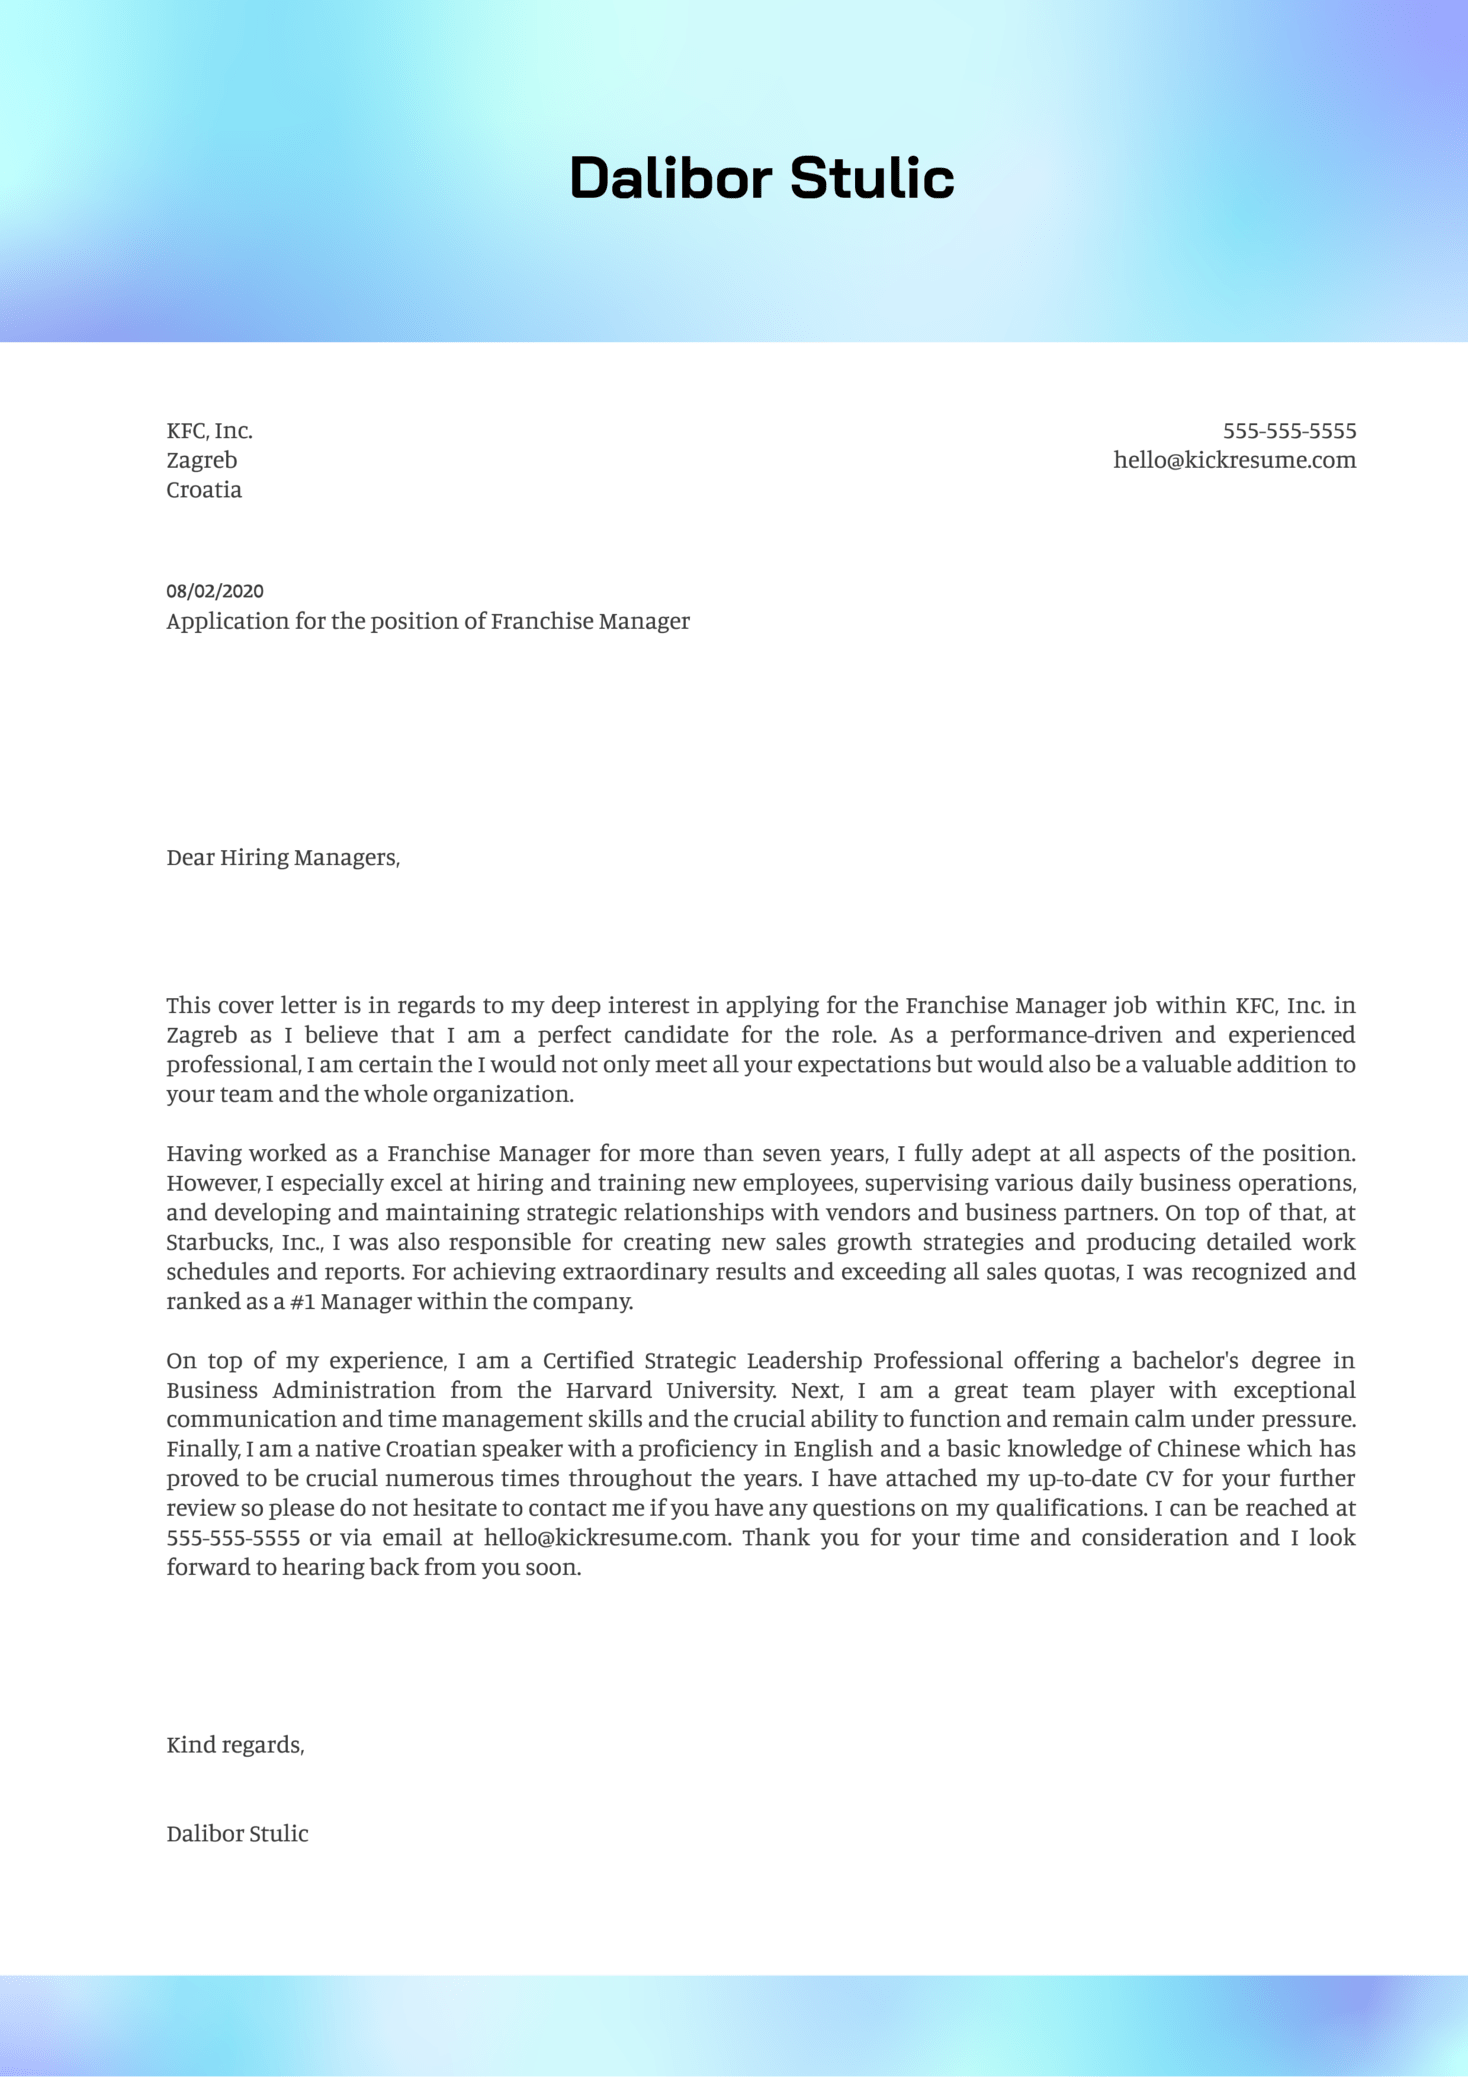 Franchise Manager Cover Letter Example